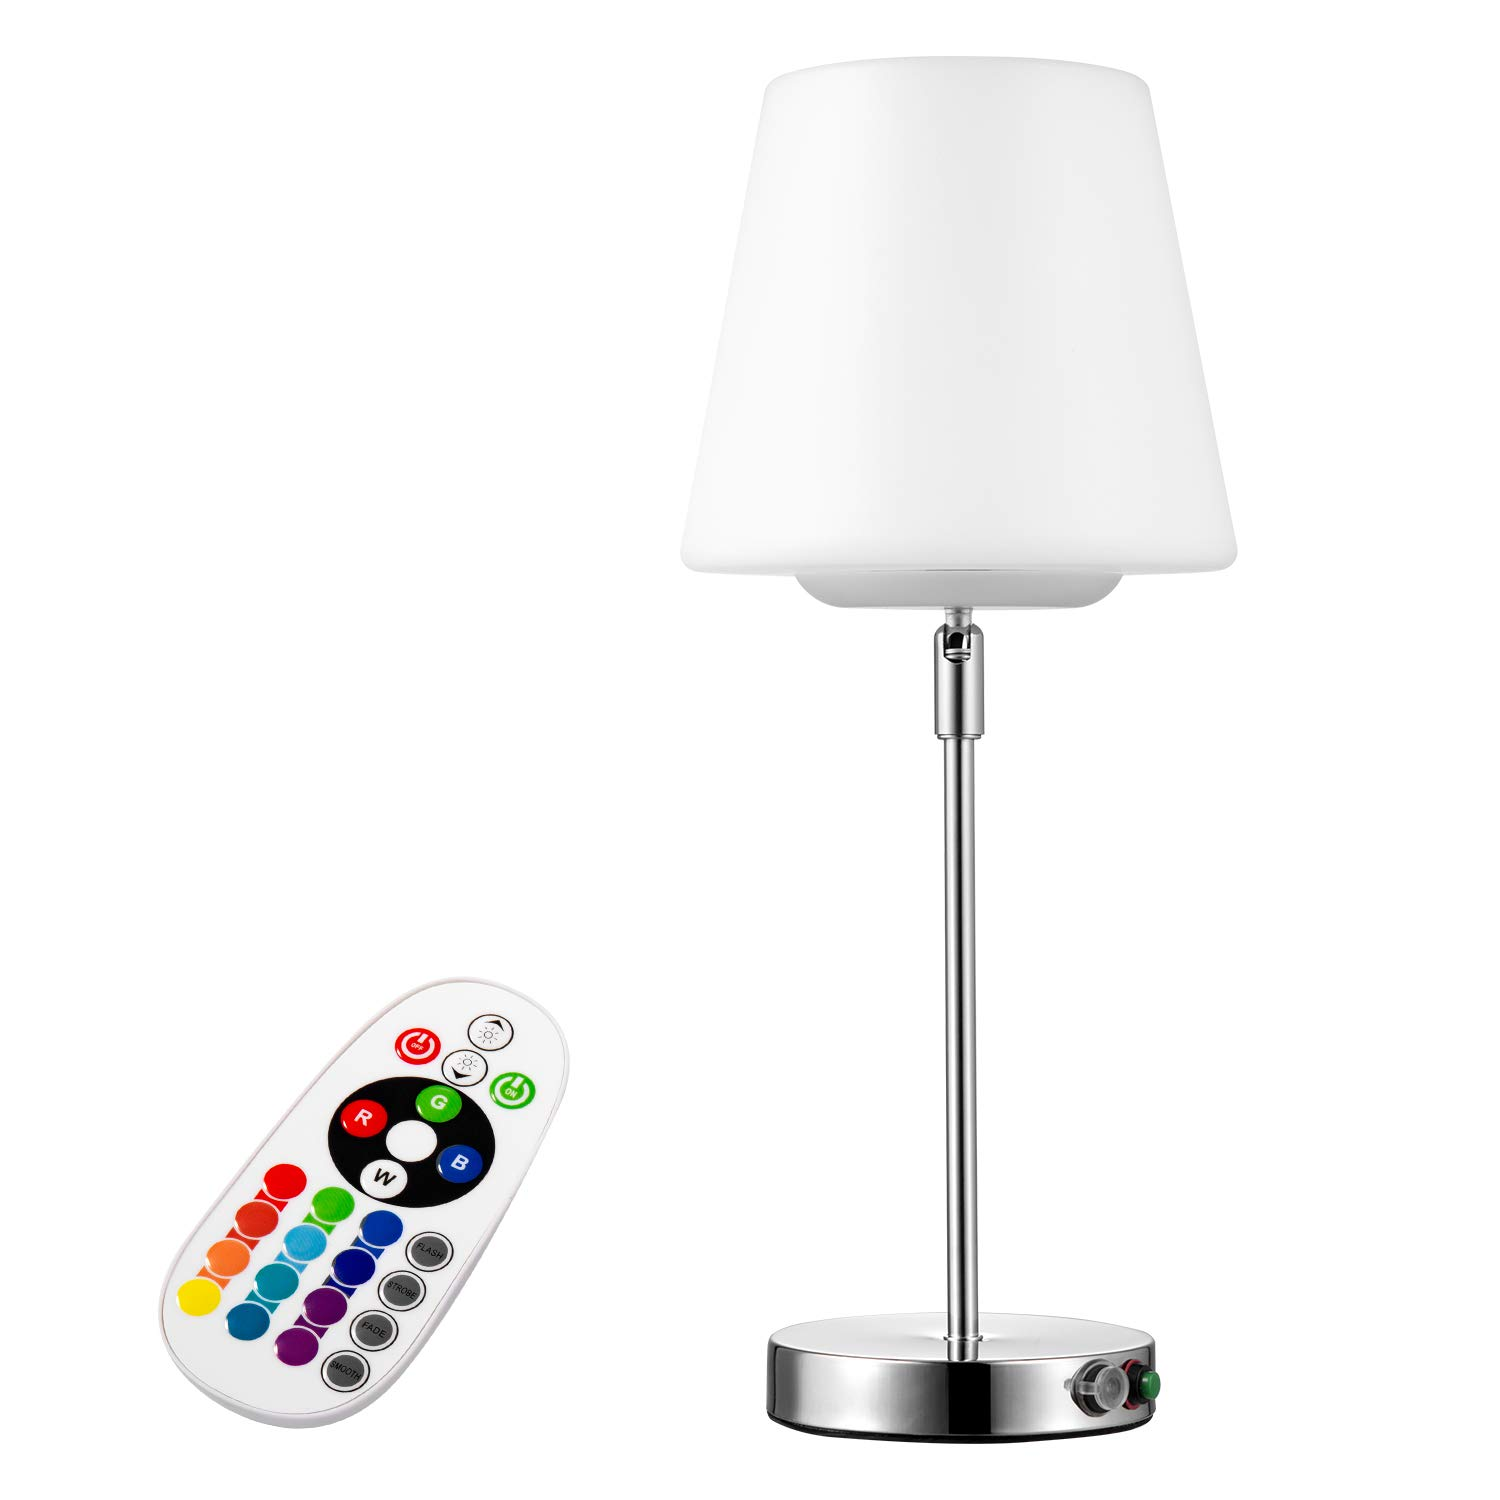 Led Decorative Table Lamp, White Light and Color RGB with Remote Control, Can Be Charged,Suitable for Indoor and Outdoor, Not Suitable for Lighting.Great for Decoration Parties & More